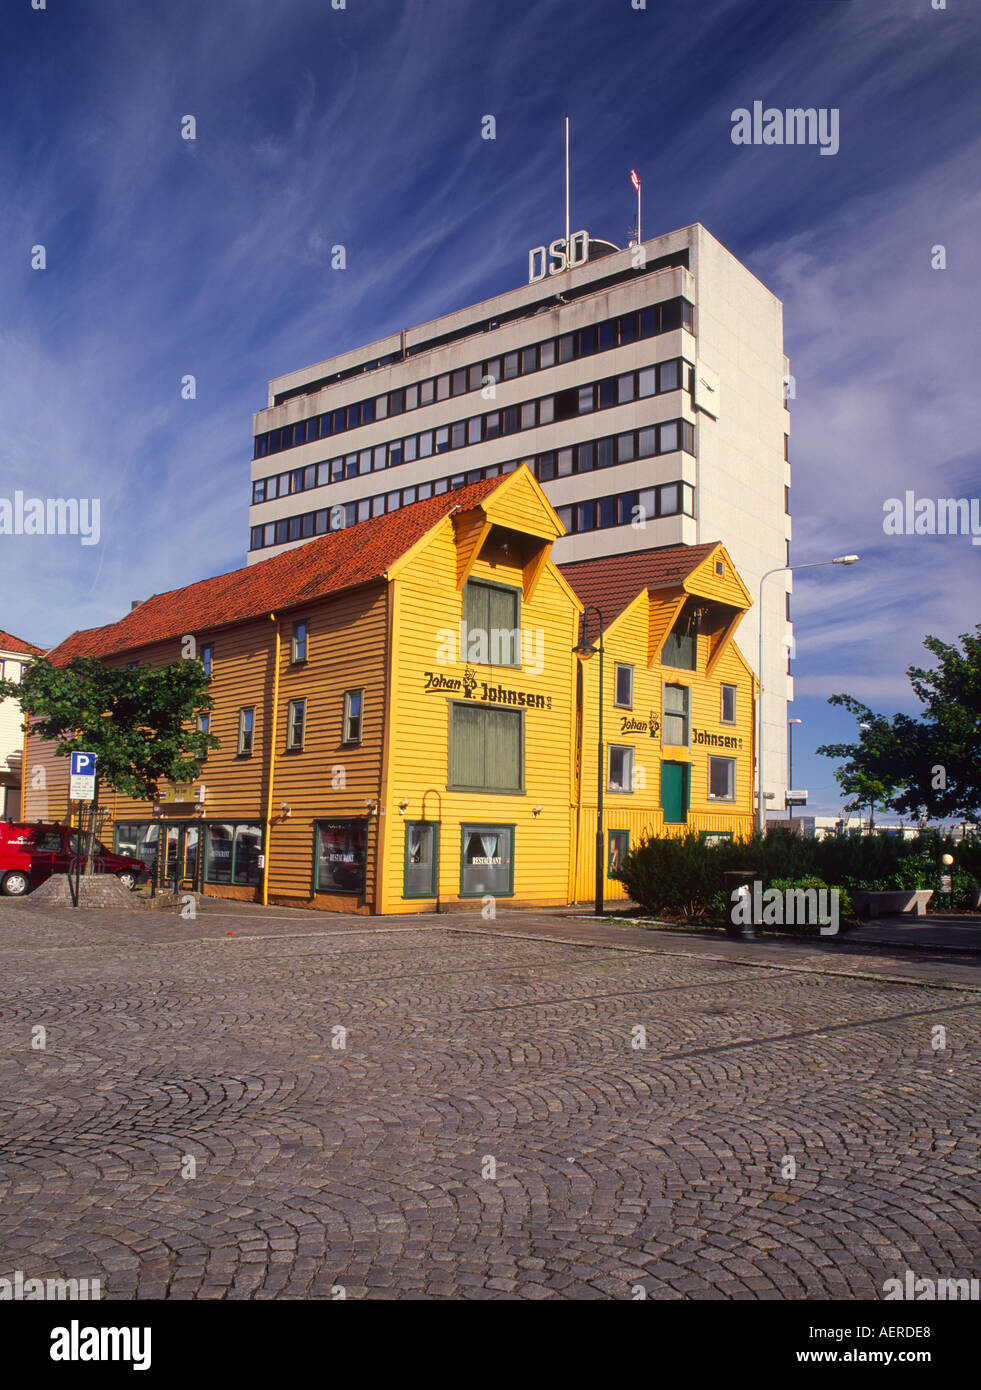 Typical Norwegian Seahouse sits adjacent to a modern concrete tower building - Stock Image